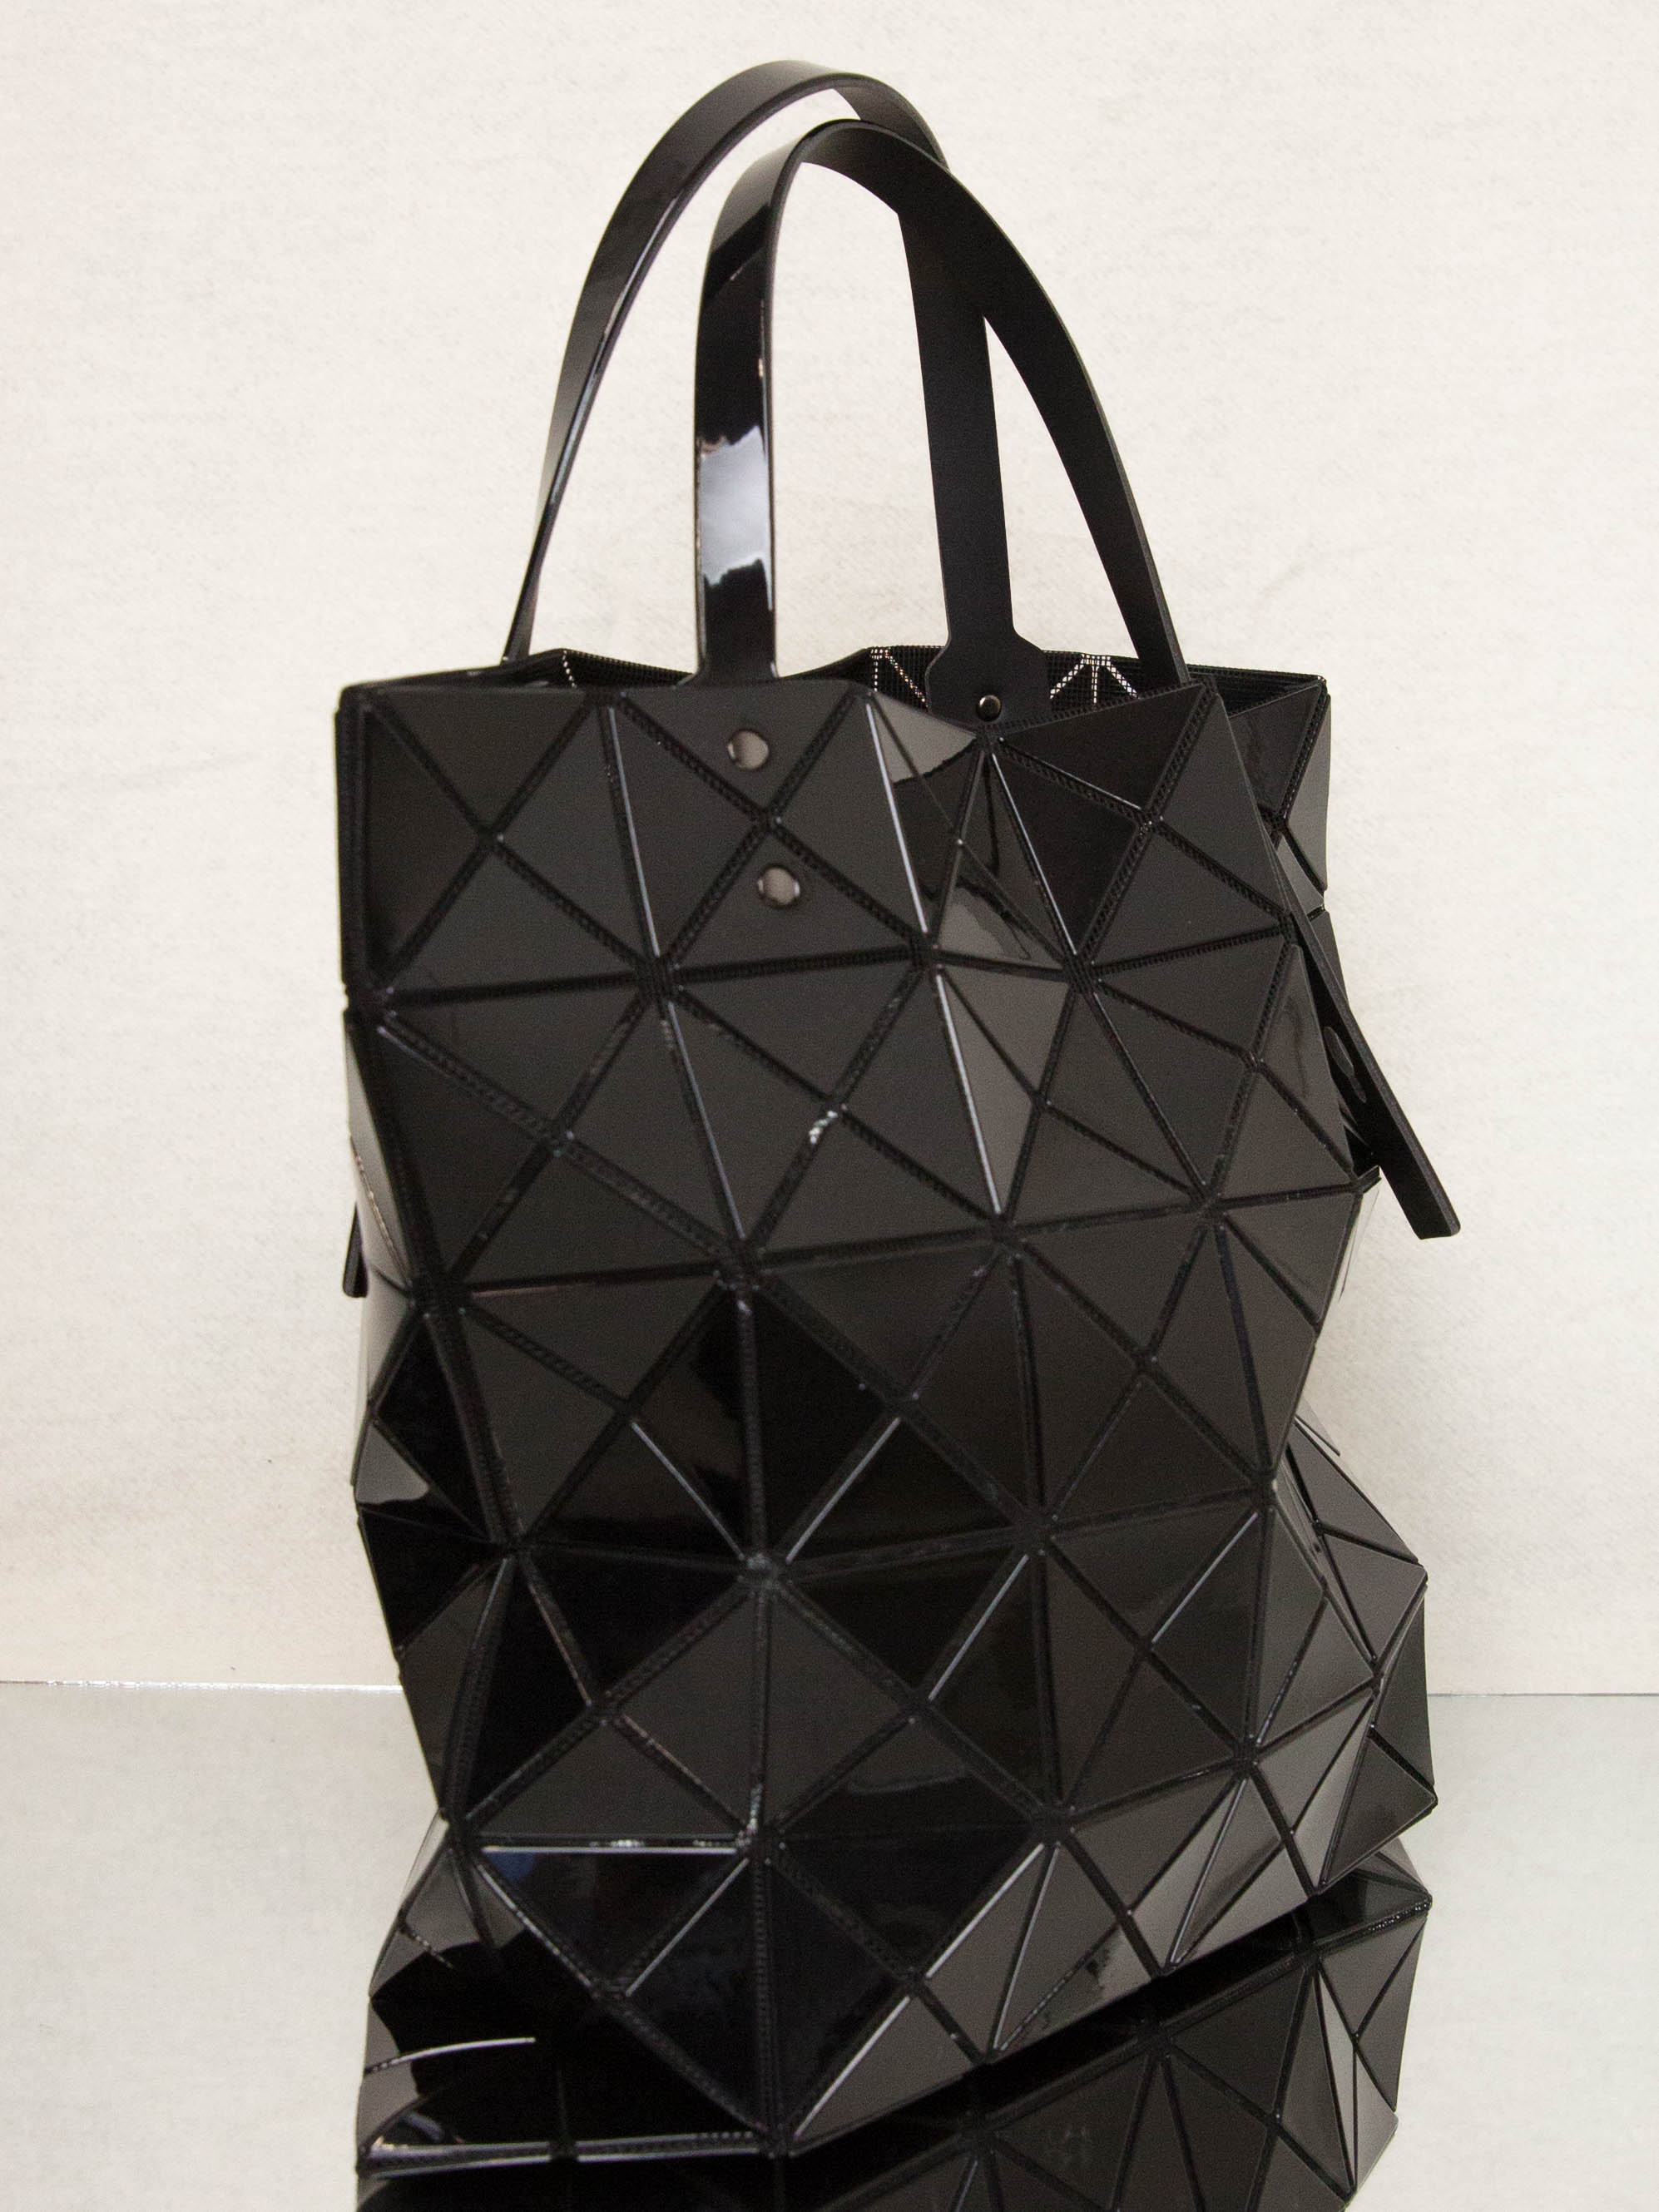 Lucent Tote Bag - Black